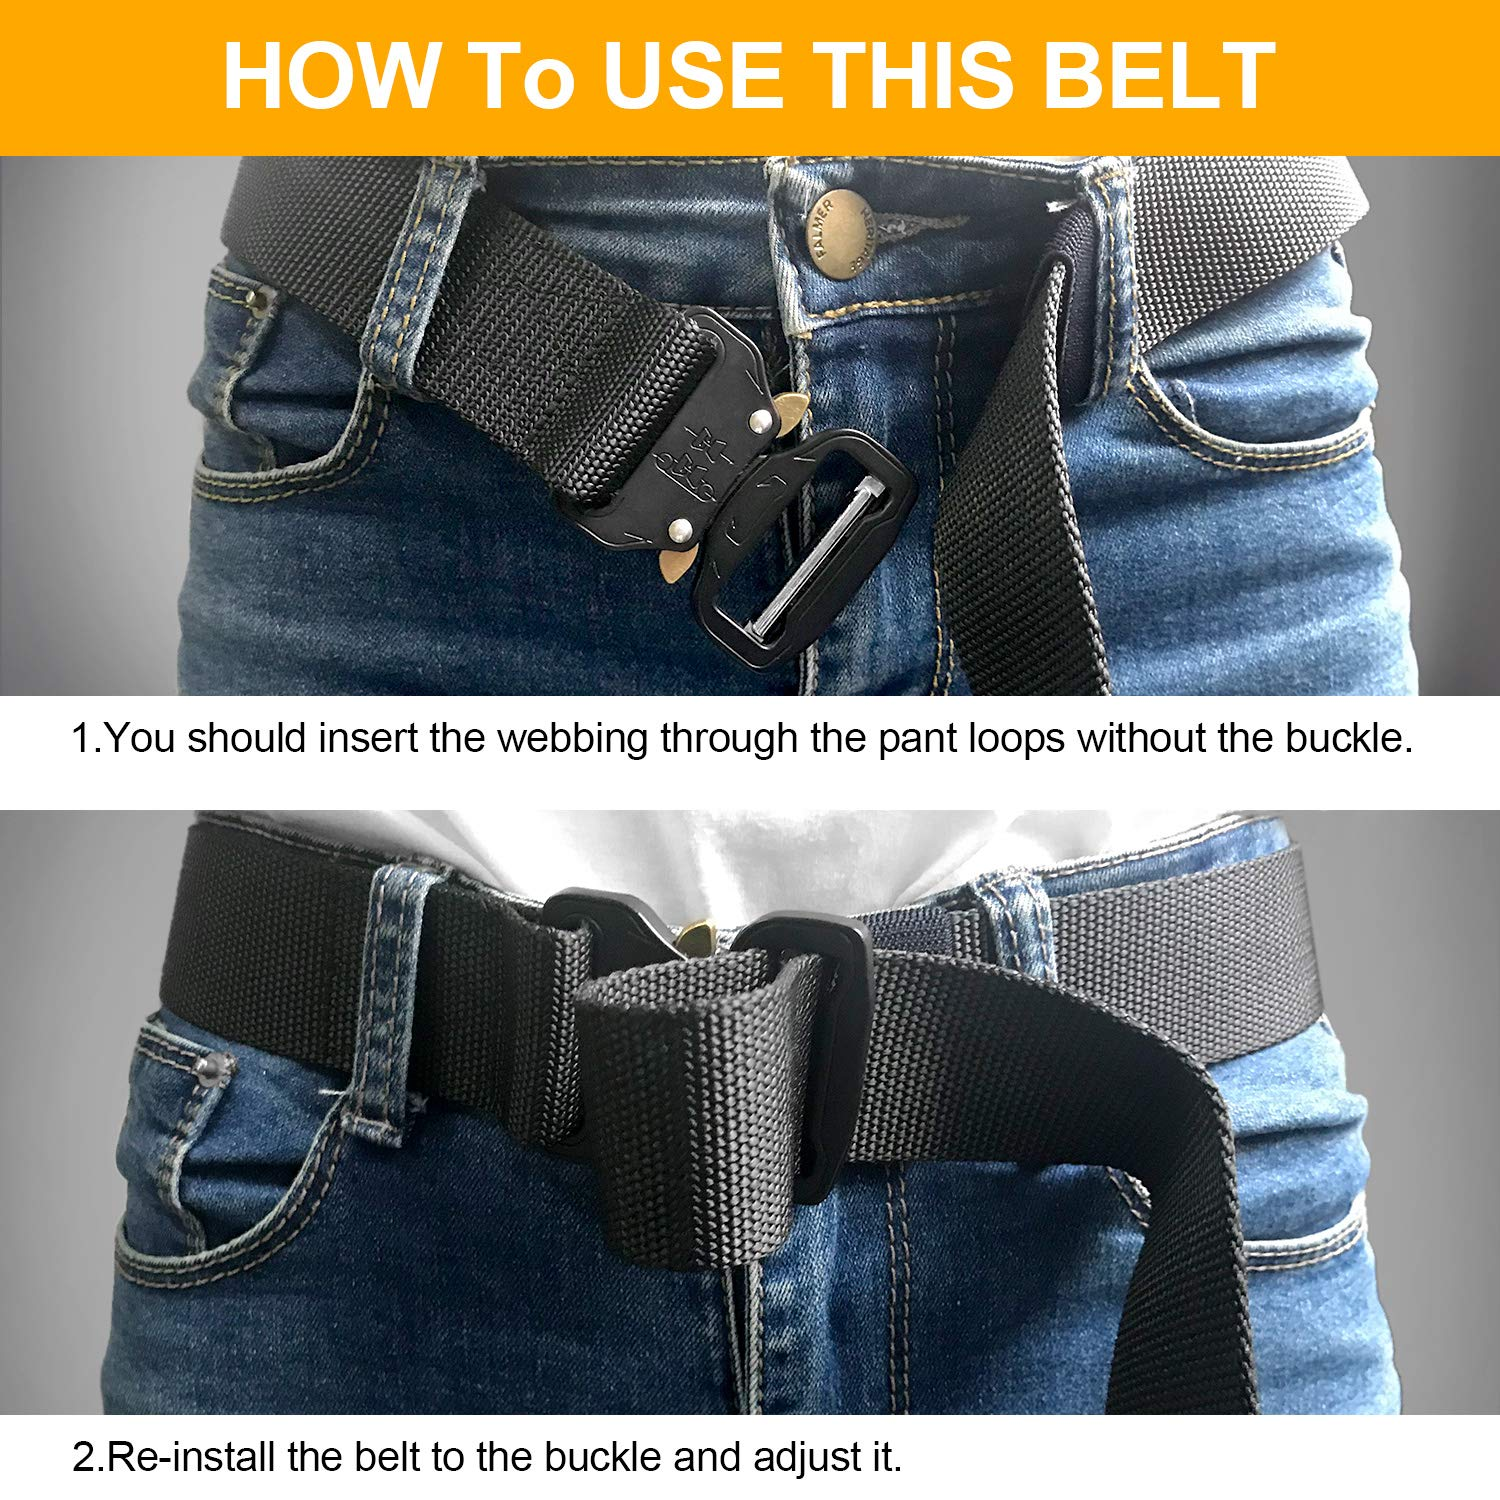 Senwow 2 Pack Mens Tactical Nylon Canvas Belt, Military Heavy Duty Waist Belts with Quick Release Buckle, Length 49.21inch, Width 1.65inch